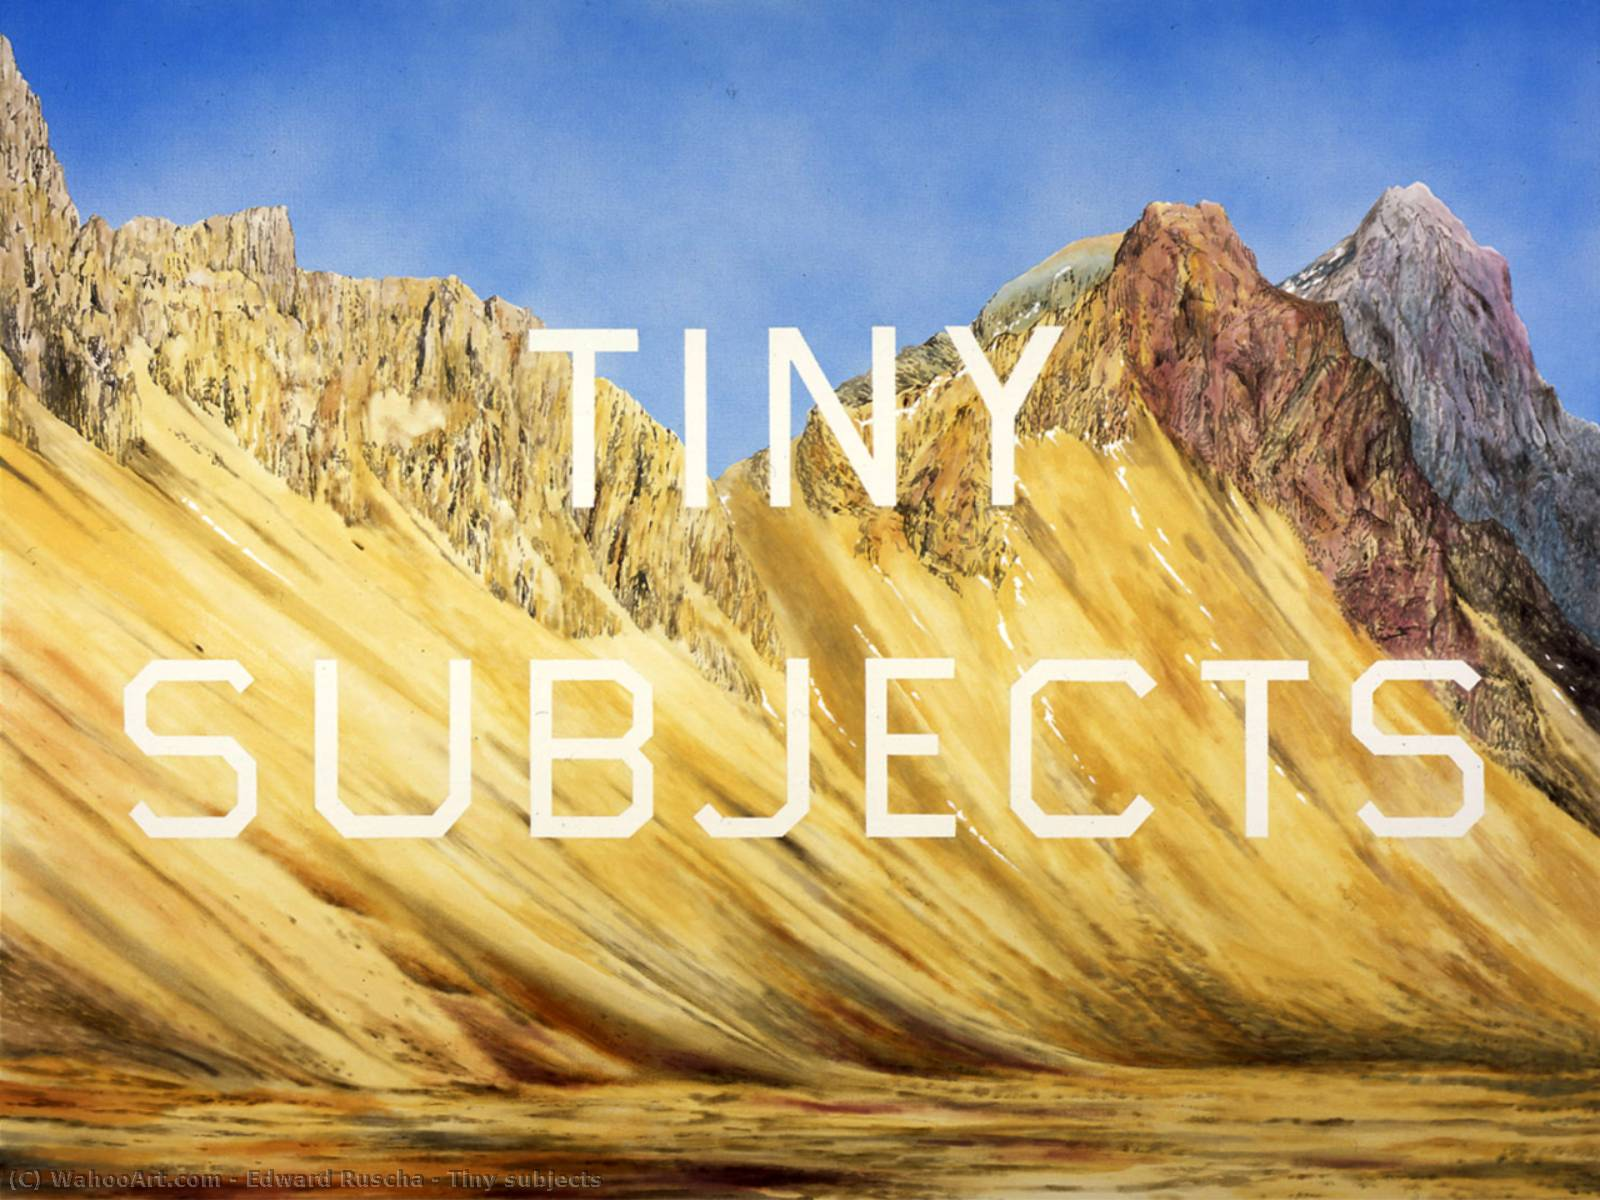 famous painting pequeno temas  of Edward Ruscha